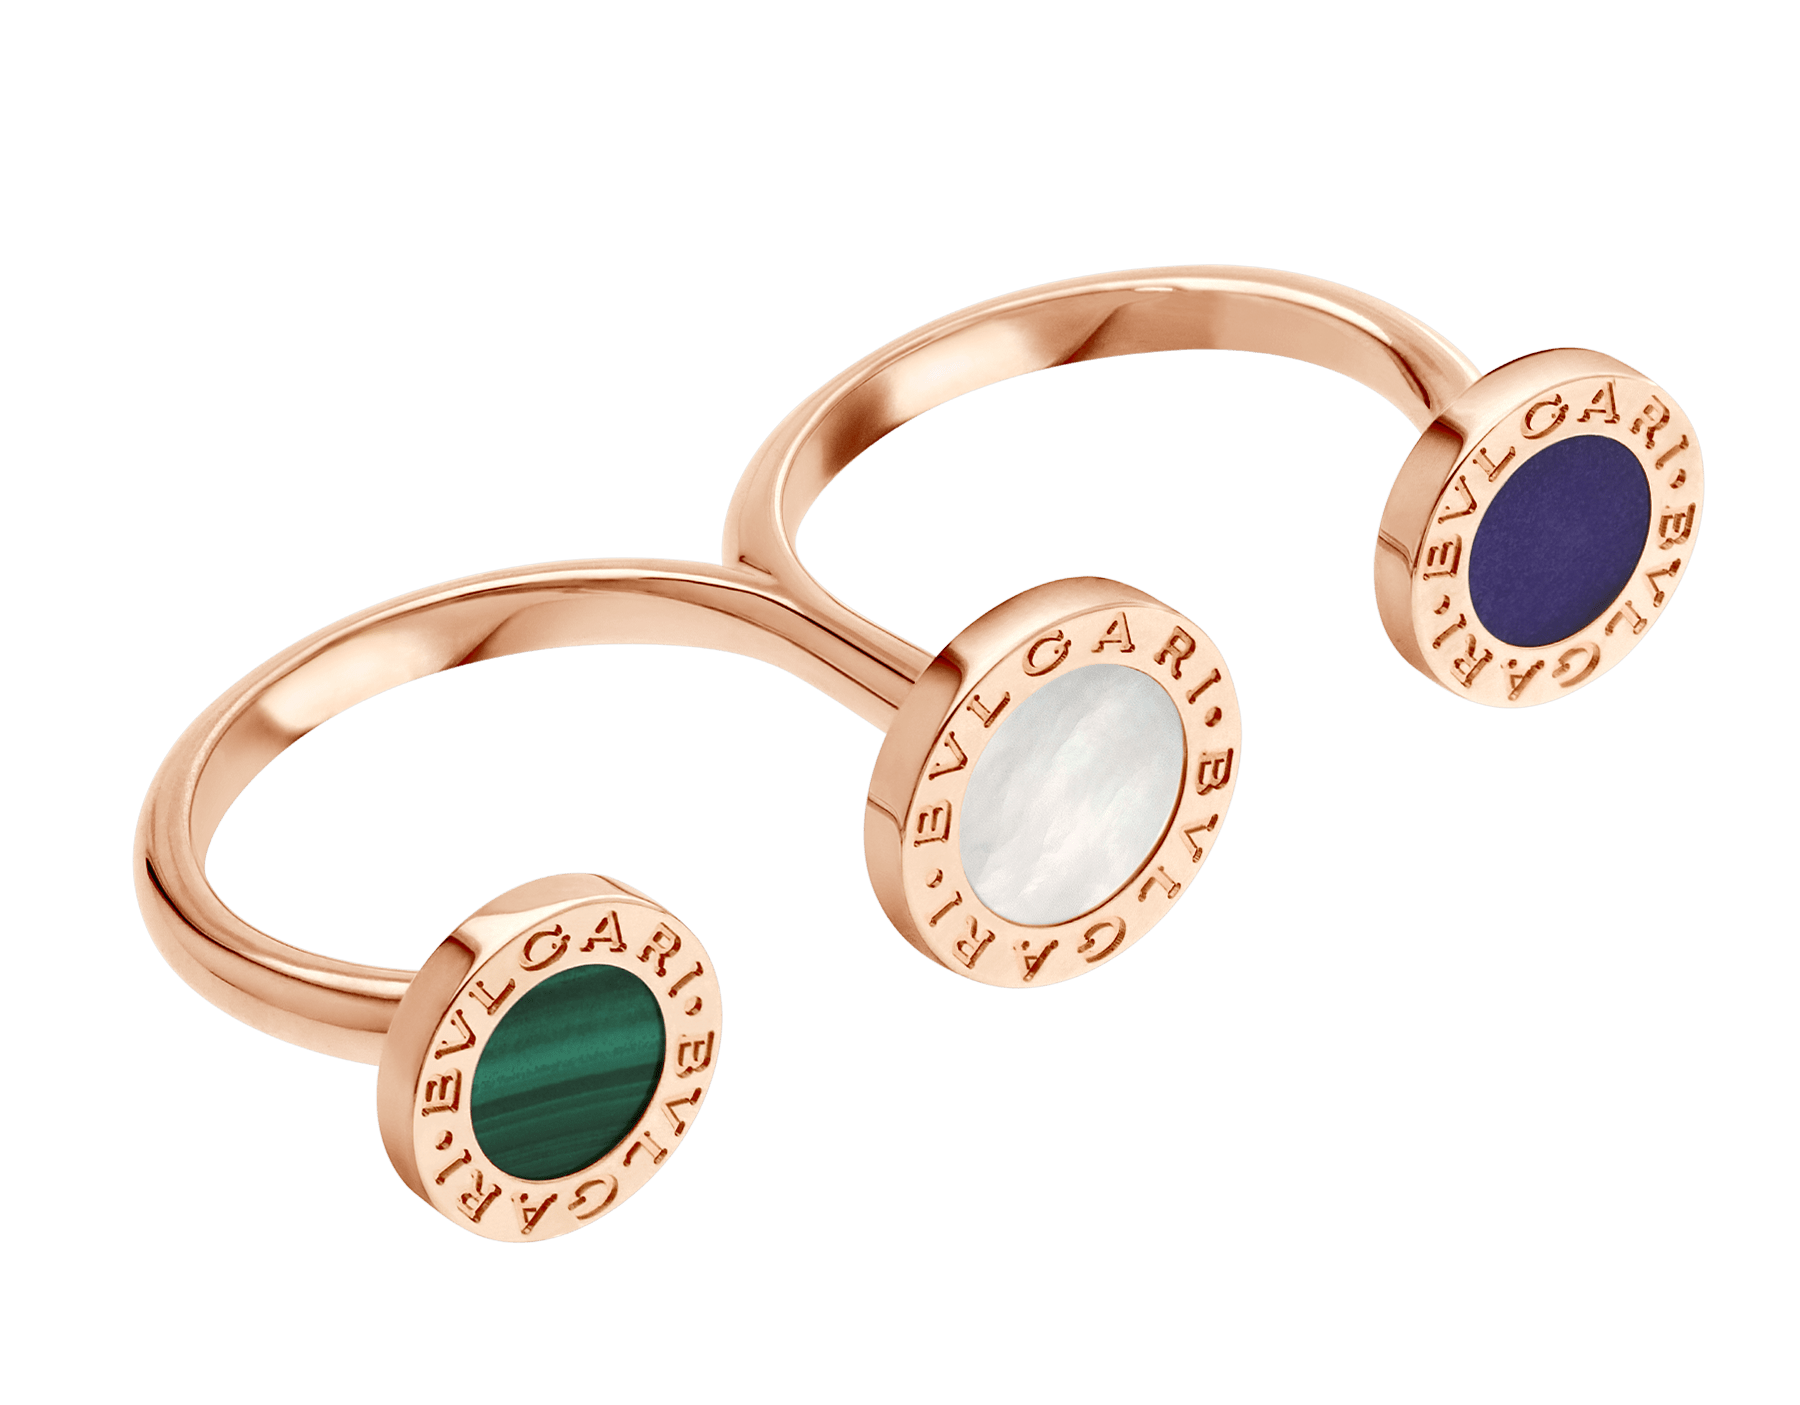 BVLGARI BVLGARI open ring in 18 kt rose gold set with mother-of-pearl, malachite and sugilite elements AN858545 image 2